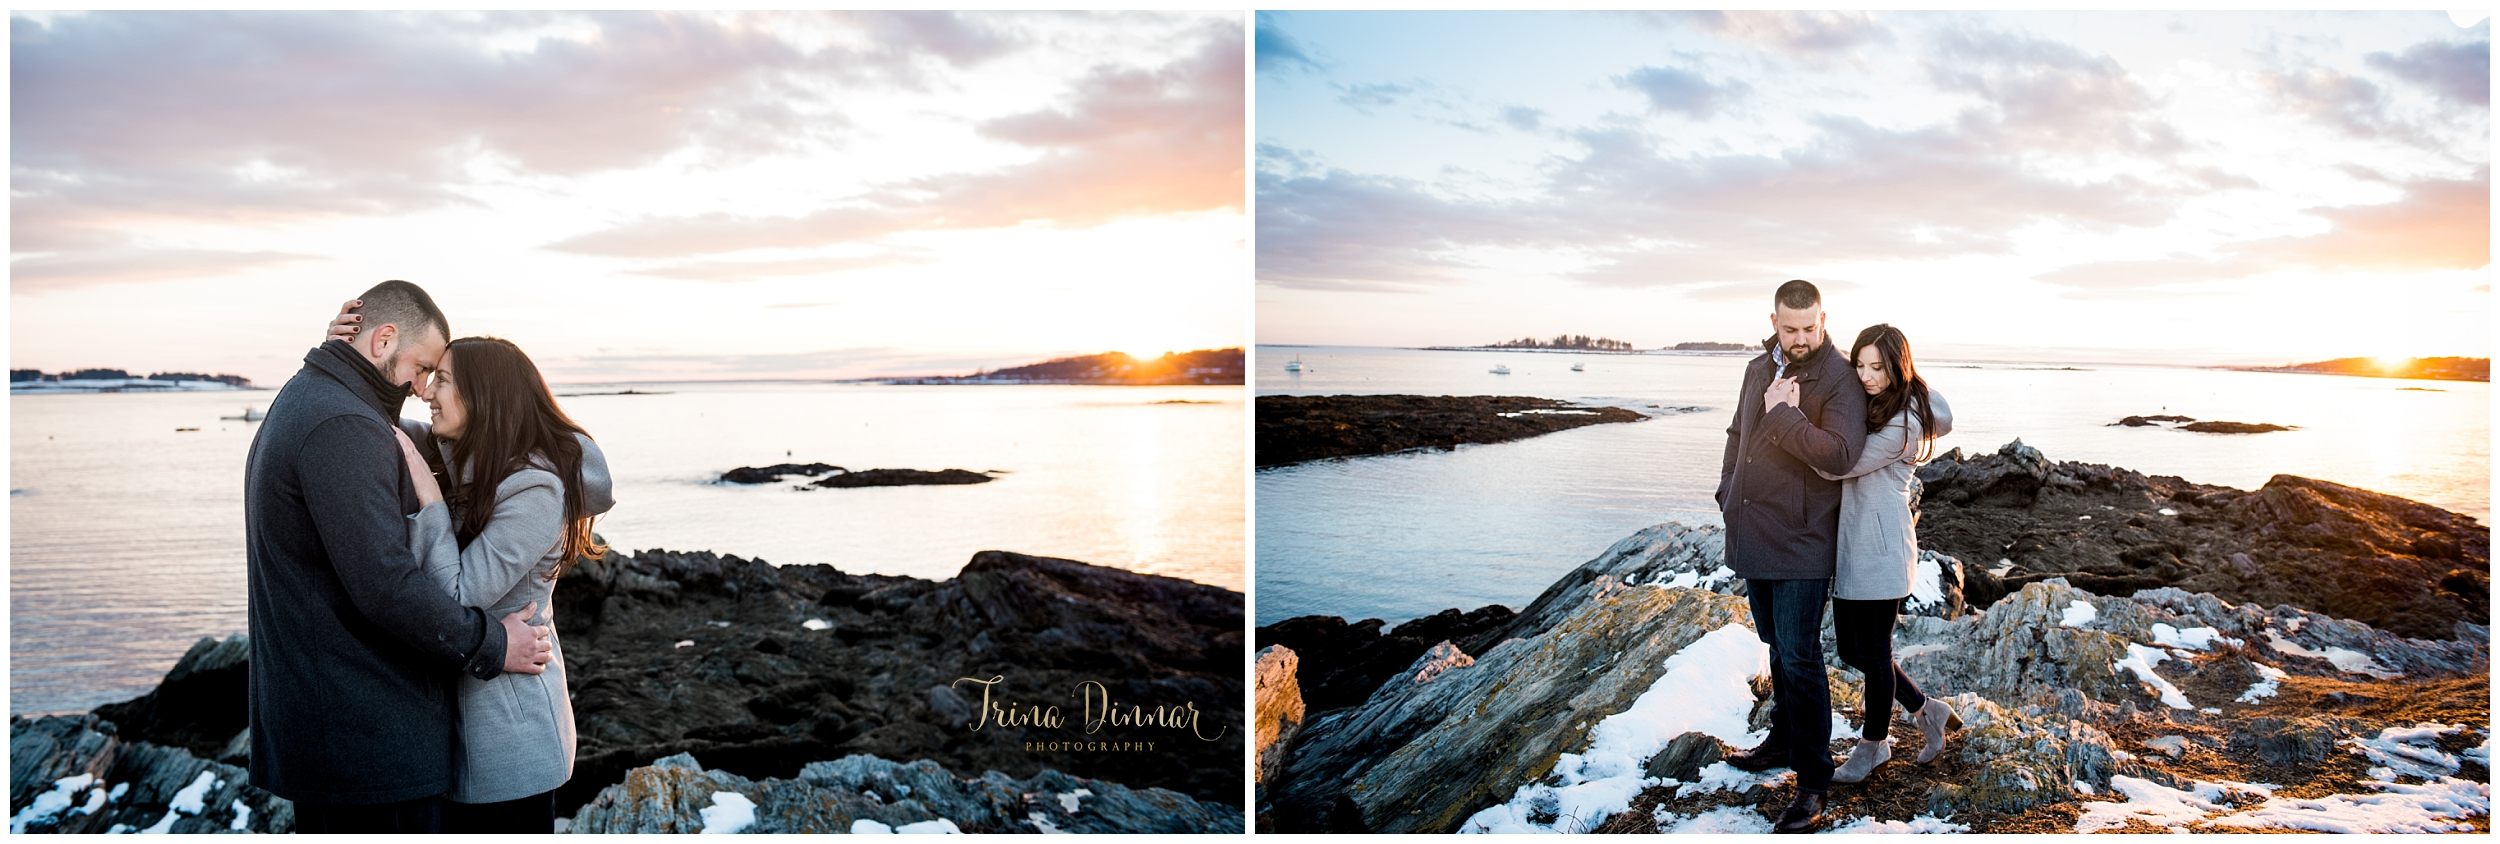 Engagement Photographers in Maine photograph couple at sunset.